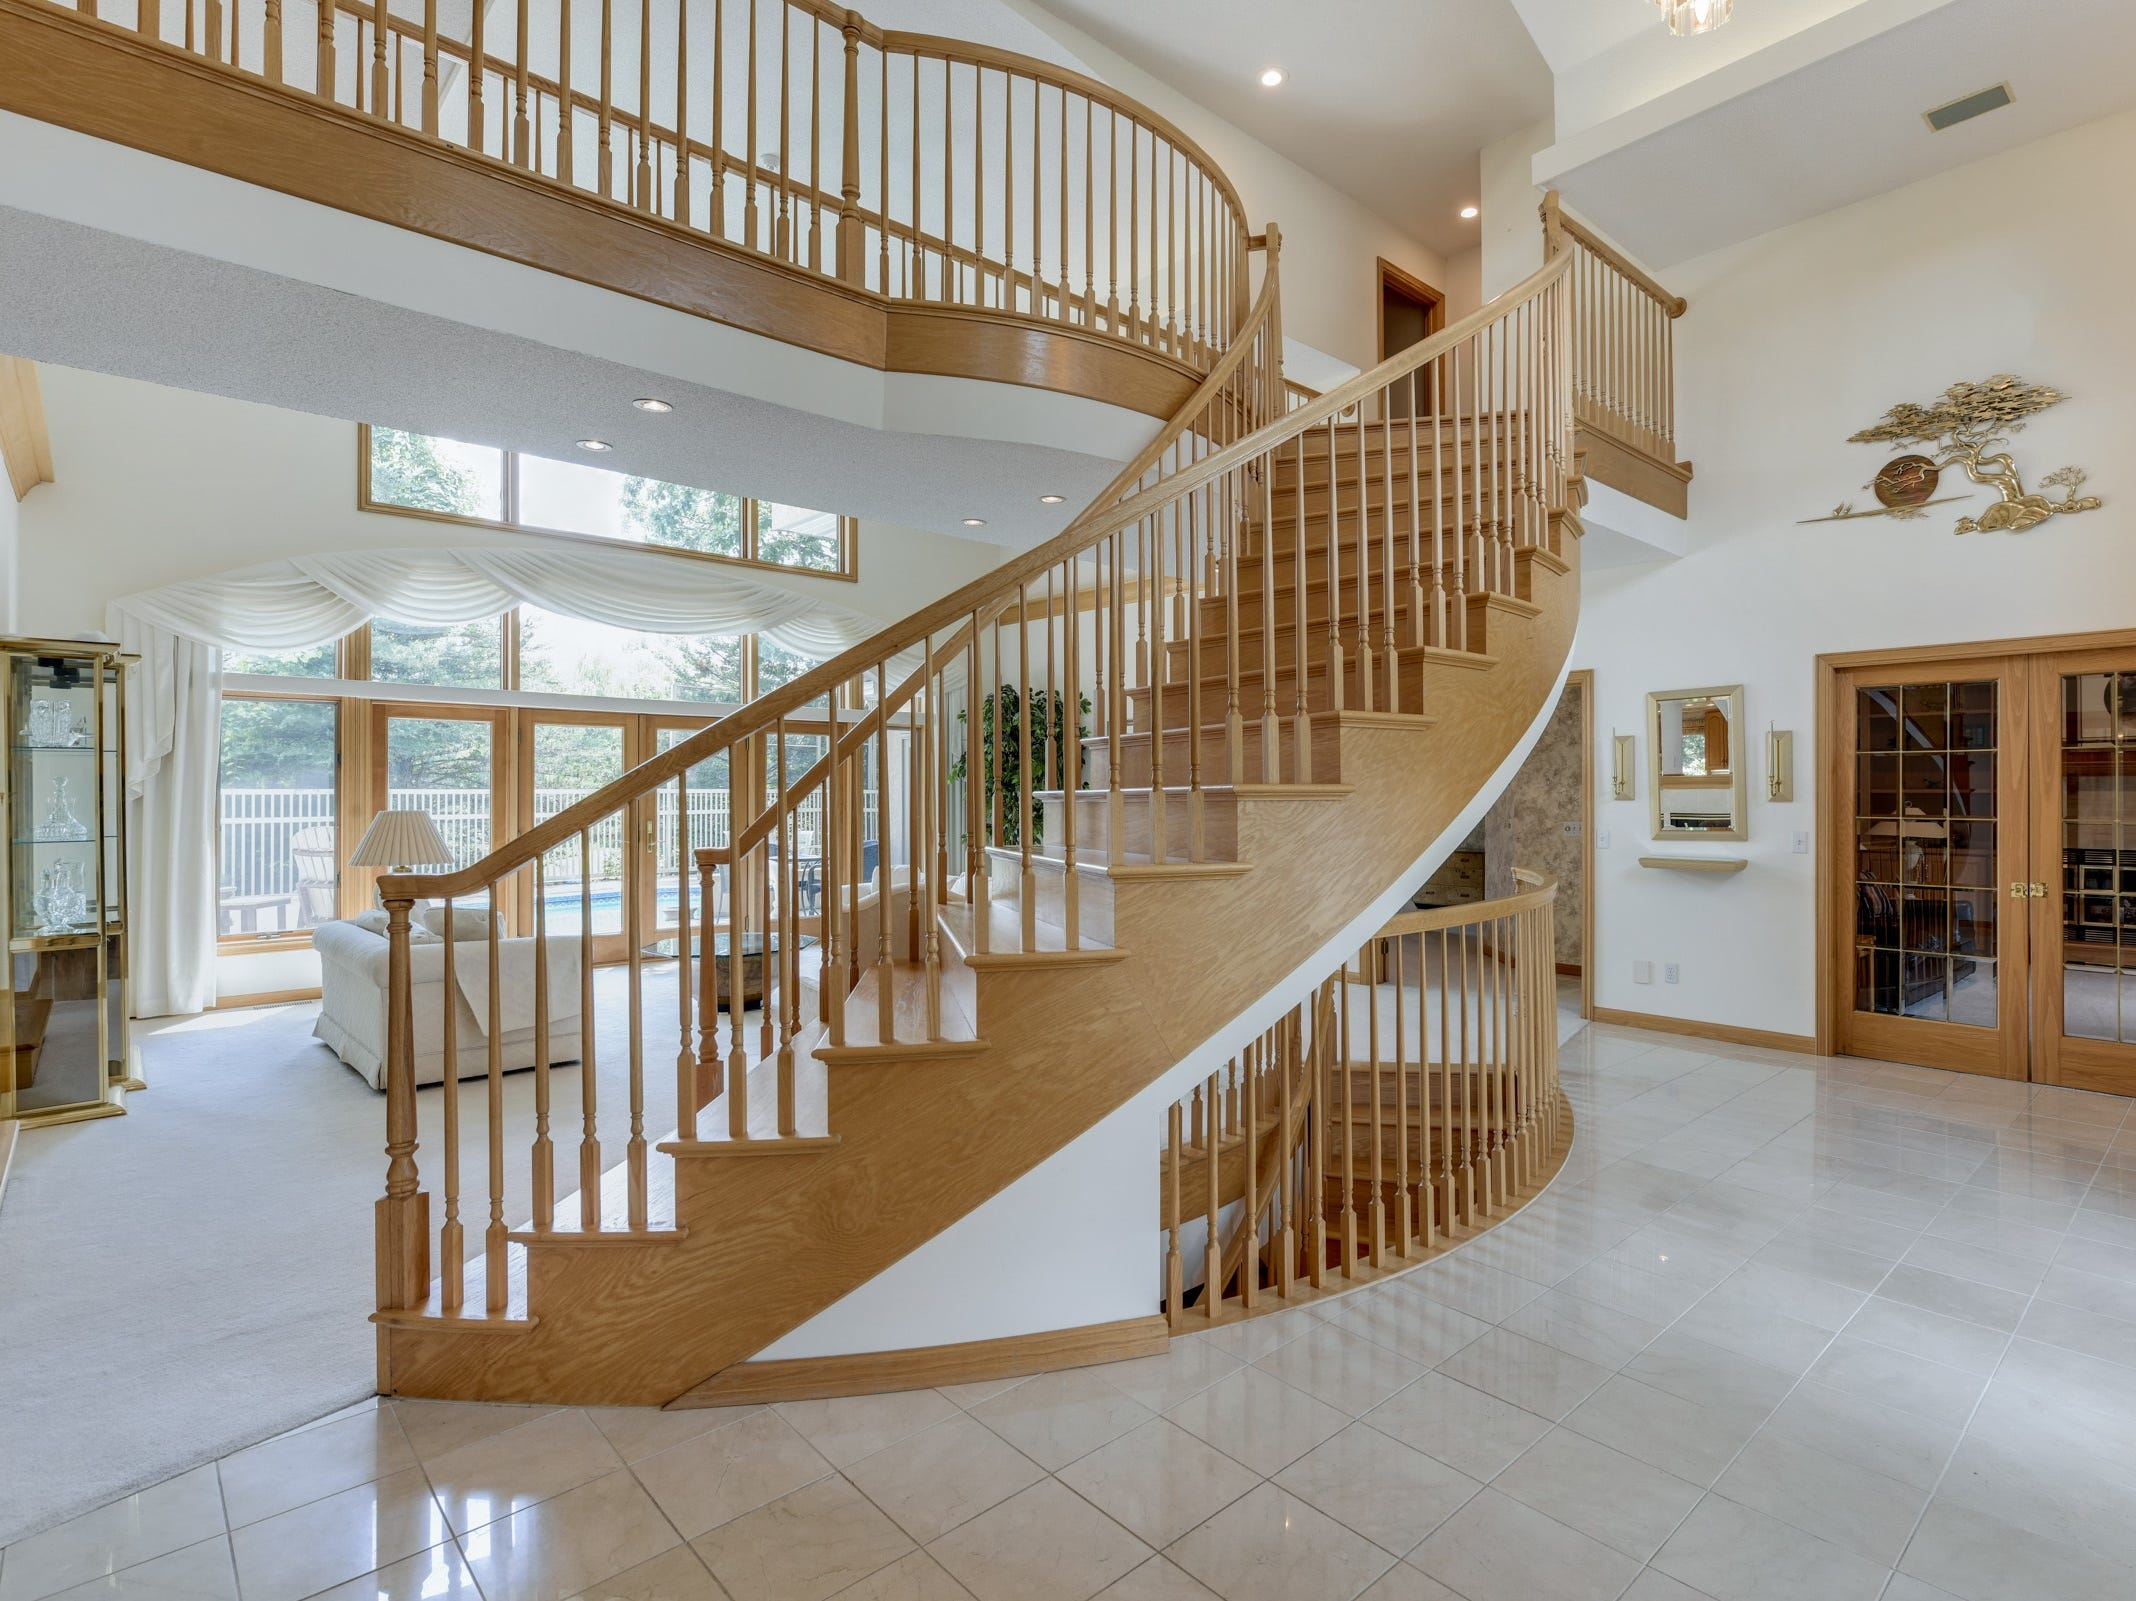 Inside, the windows allow light to stream into the house and highlight the dramatic winding staircase which leads to an upper level catwalk.